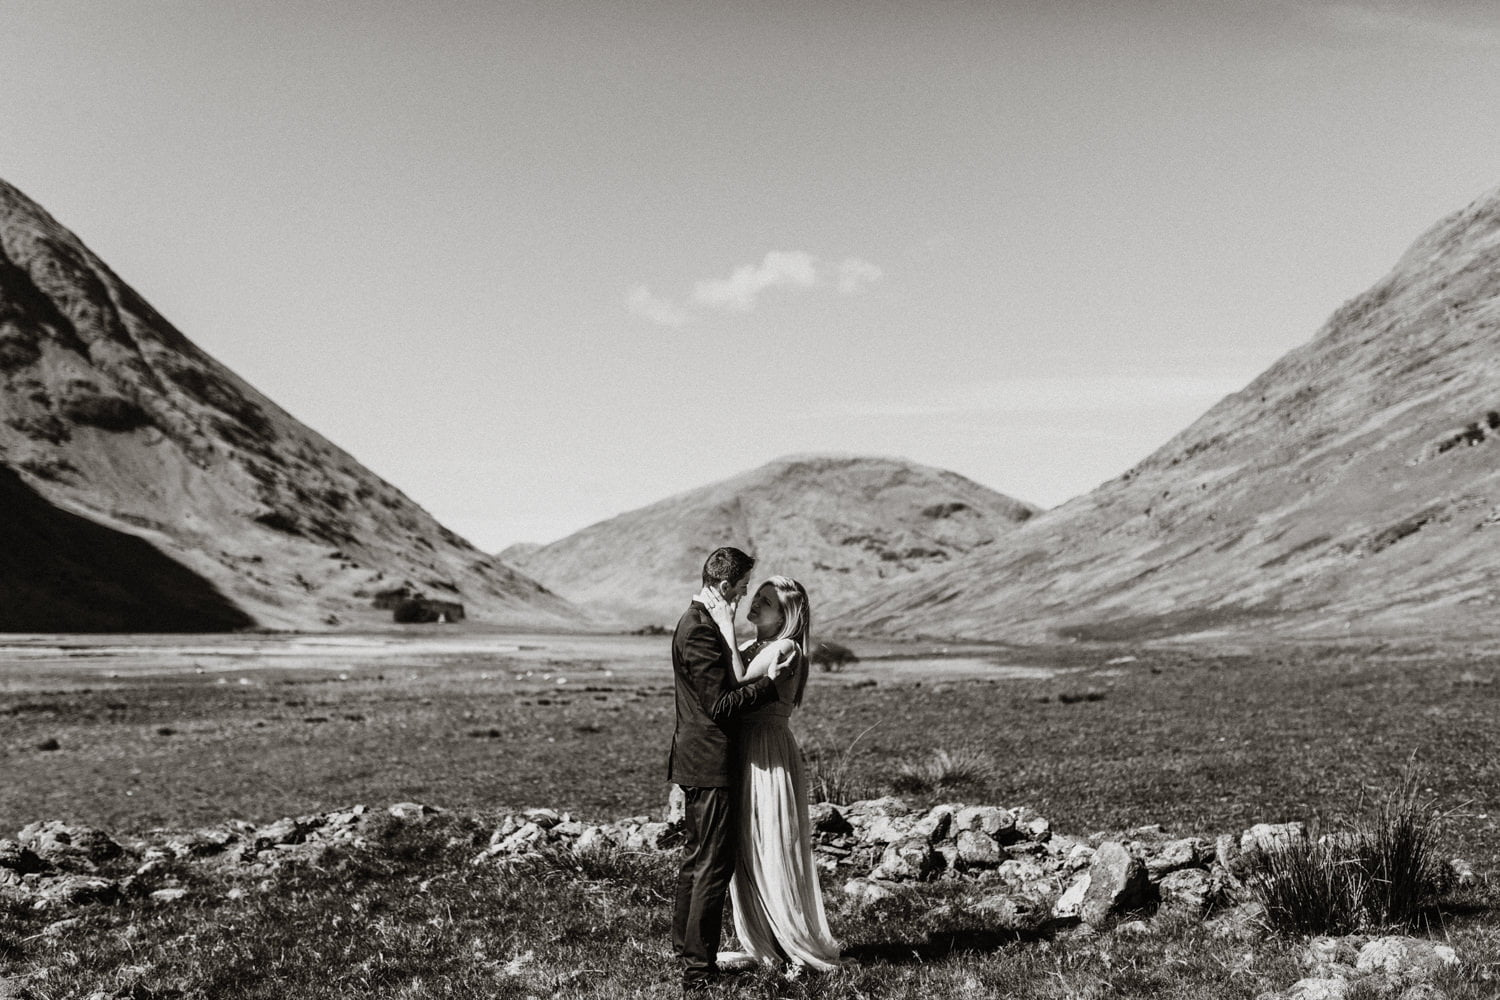 Scotland wedding photographer, Scotland elopement photographer, engagement photographer Scotland, Fine art wedding photographer Scotland, wedding photography Scotland, wedding Photographer St Andrews, Isle of Skye wedding photographer, Wedding photographer scotland, wedding photographer Aberdeen, Wedding photographer Edinburgh, wedding photographer Glasgow, wedding photographer Dundee, Scottish wedding photographer, engagement photography Edinburgh, couples photoshoot Glencoe, Glencoe Valley, Vow renewal Scotland